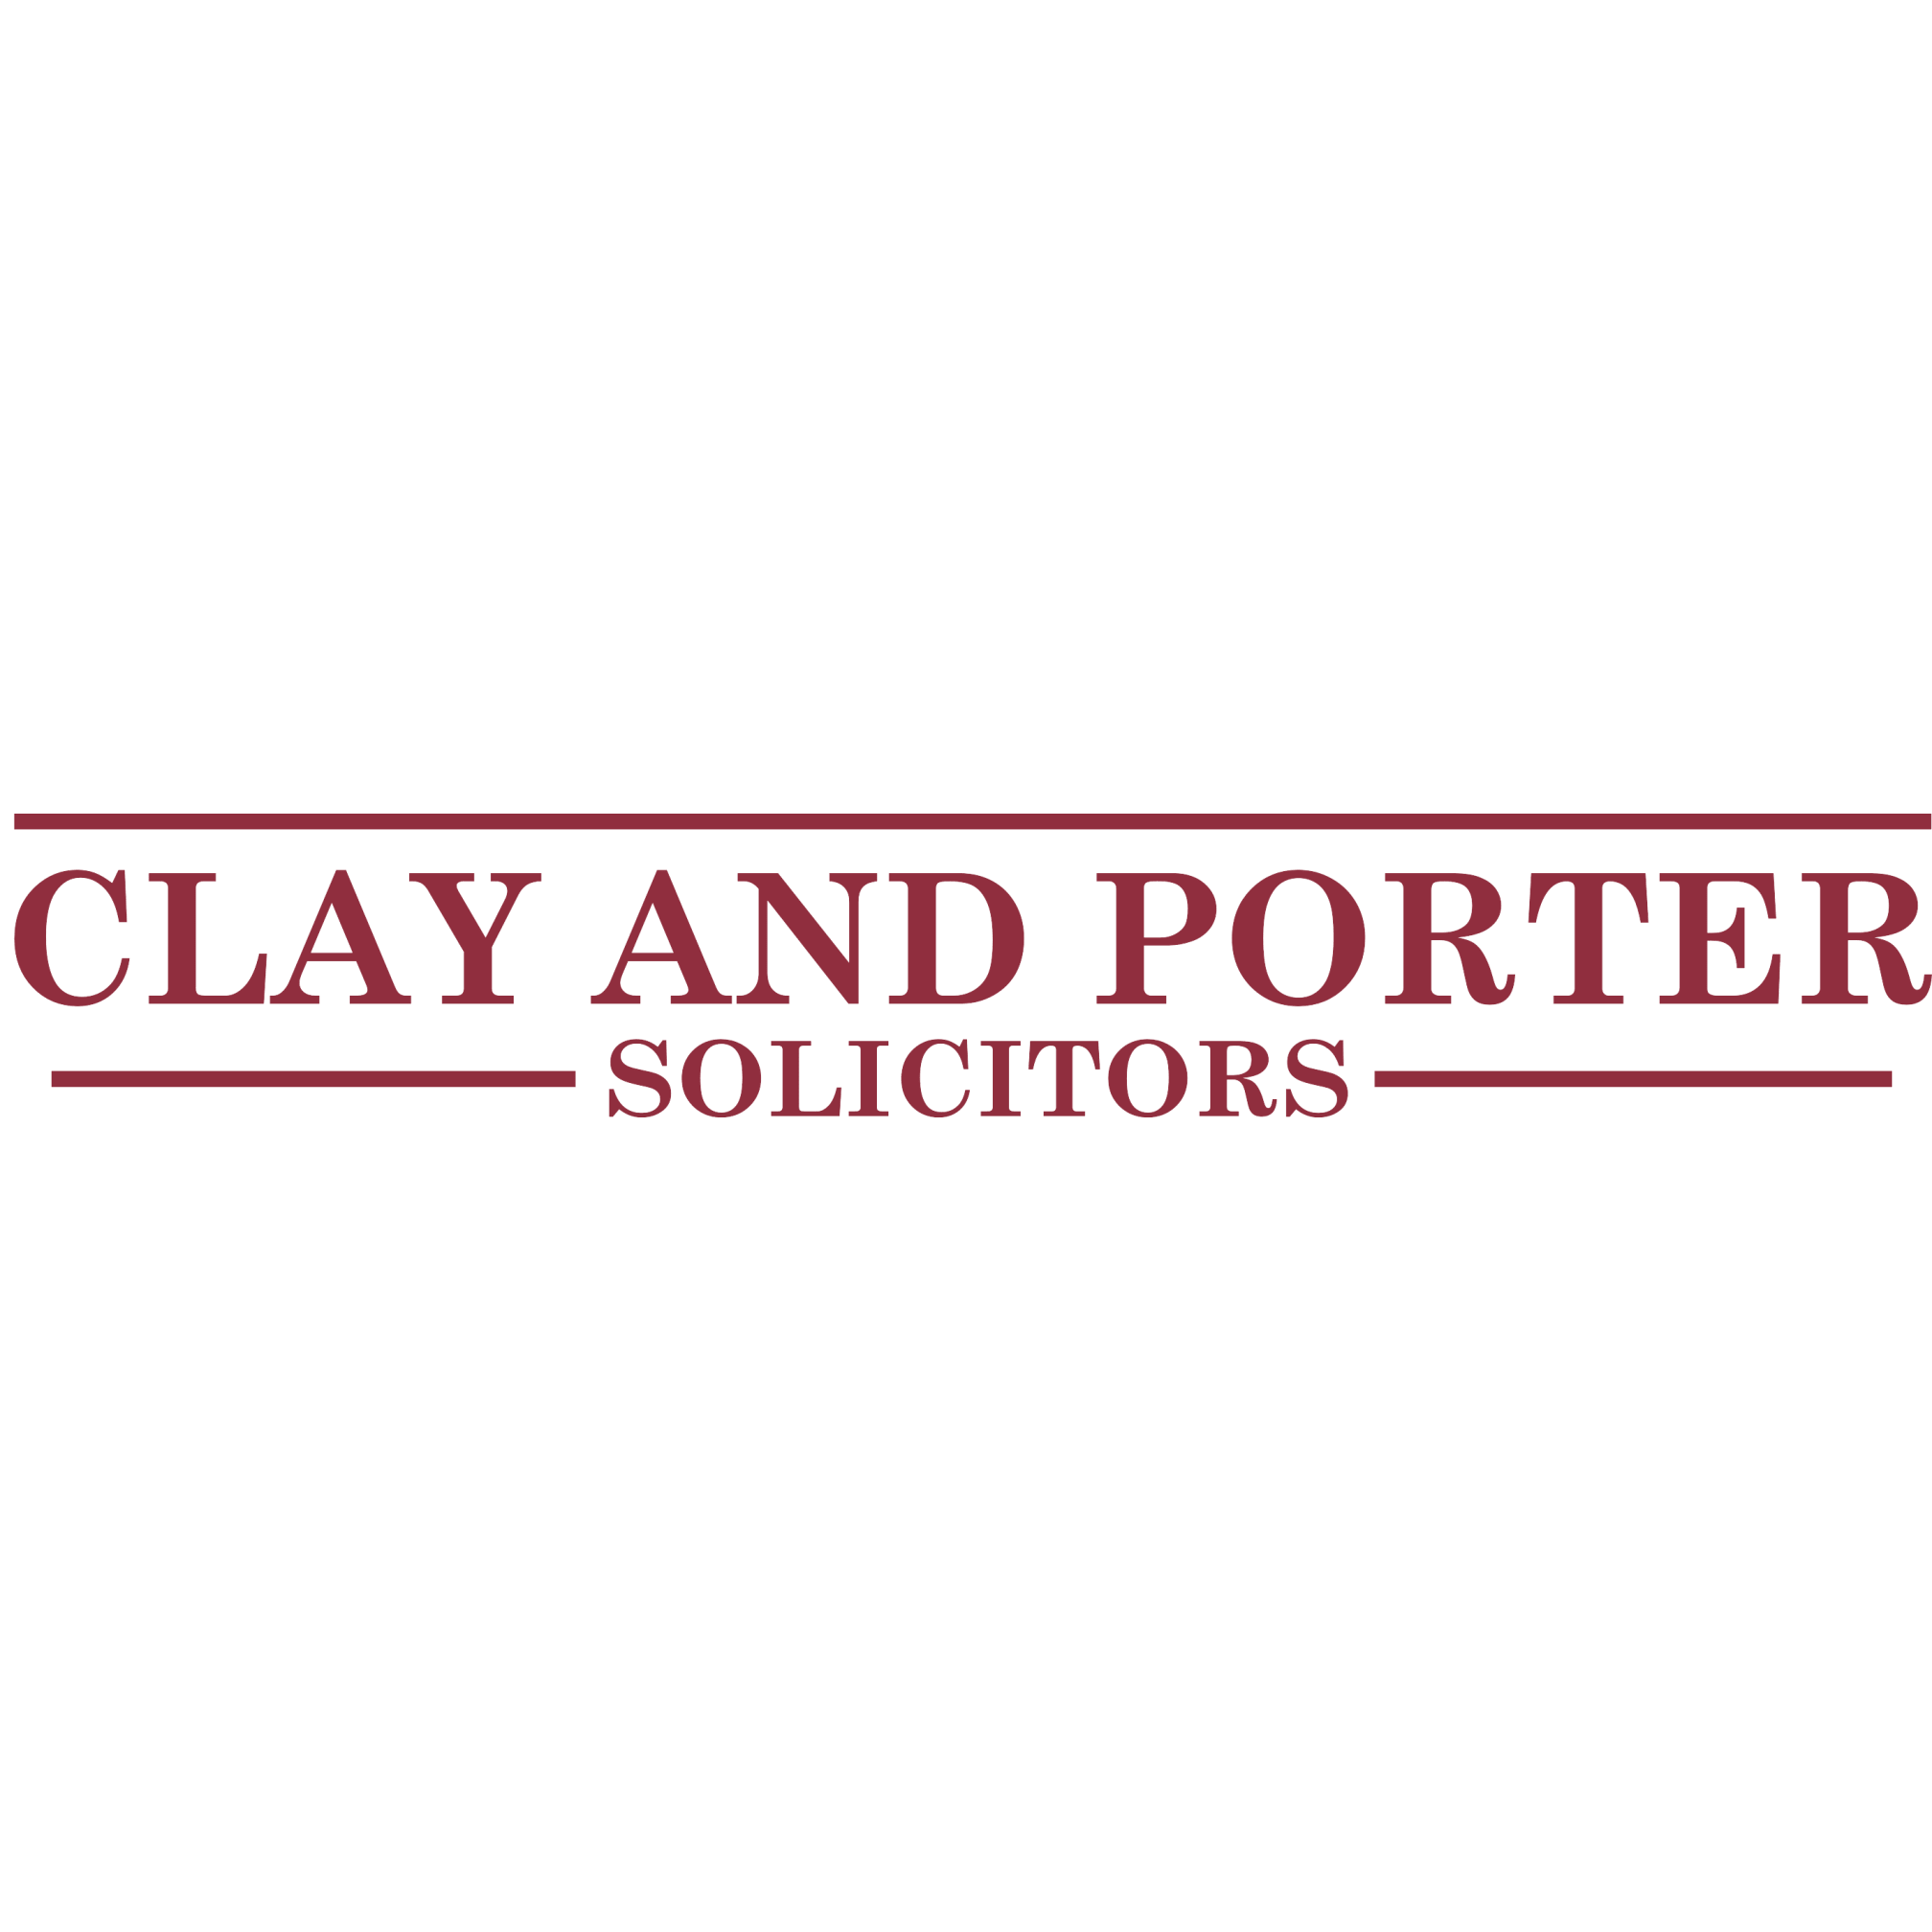 Clay and Porter Solicitors - Milton Keynes, Buckinghamshire MK11 1AF - 01908 520138 | ShowMeLocal.com